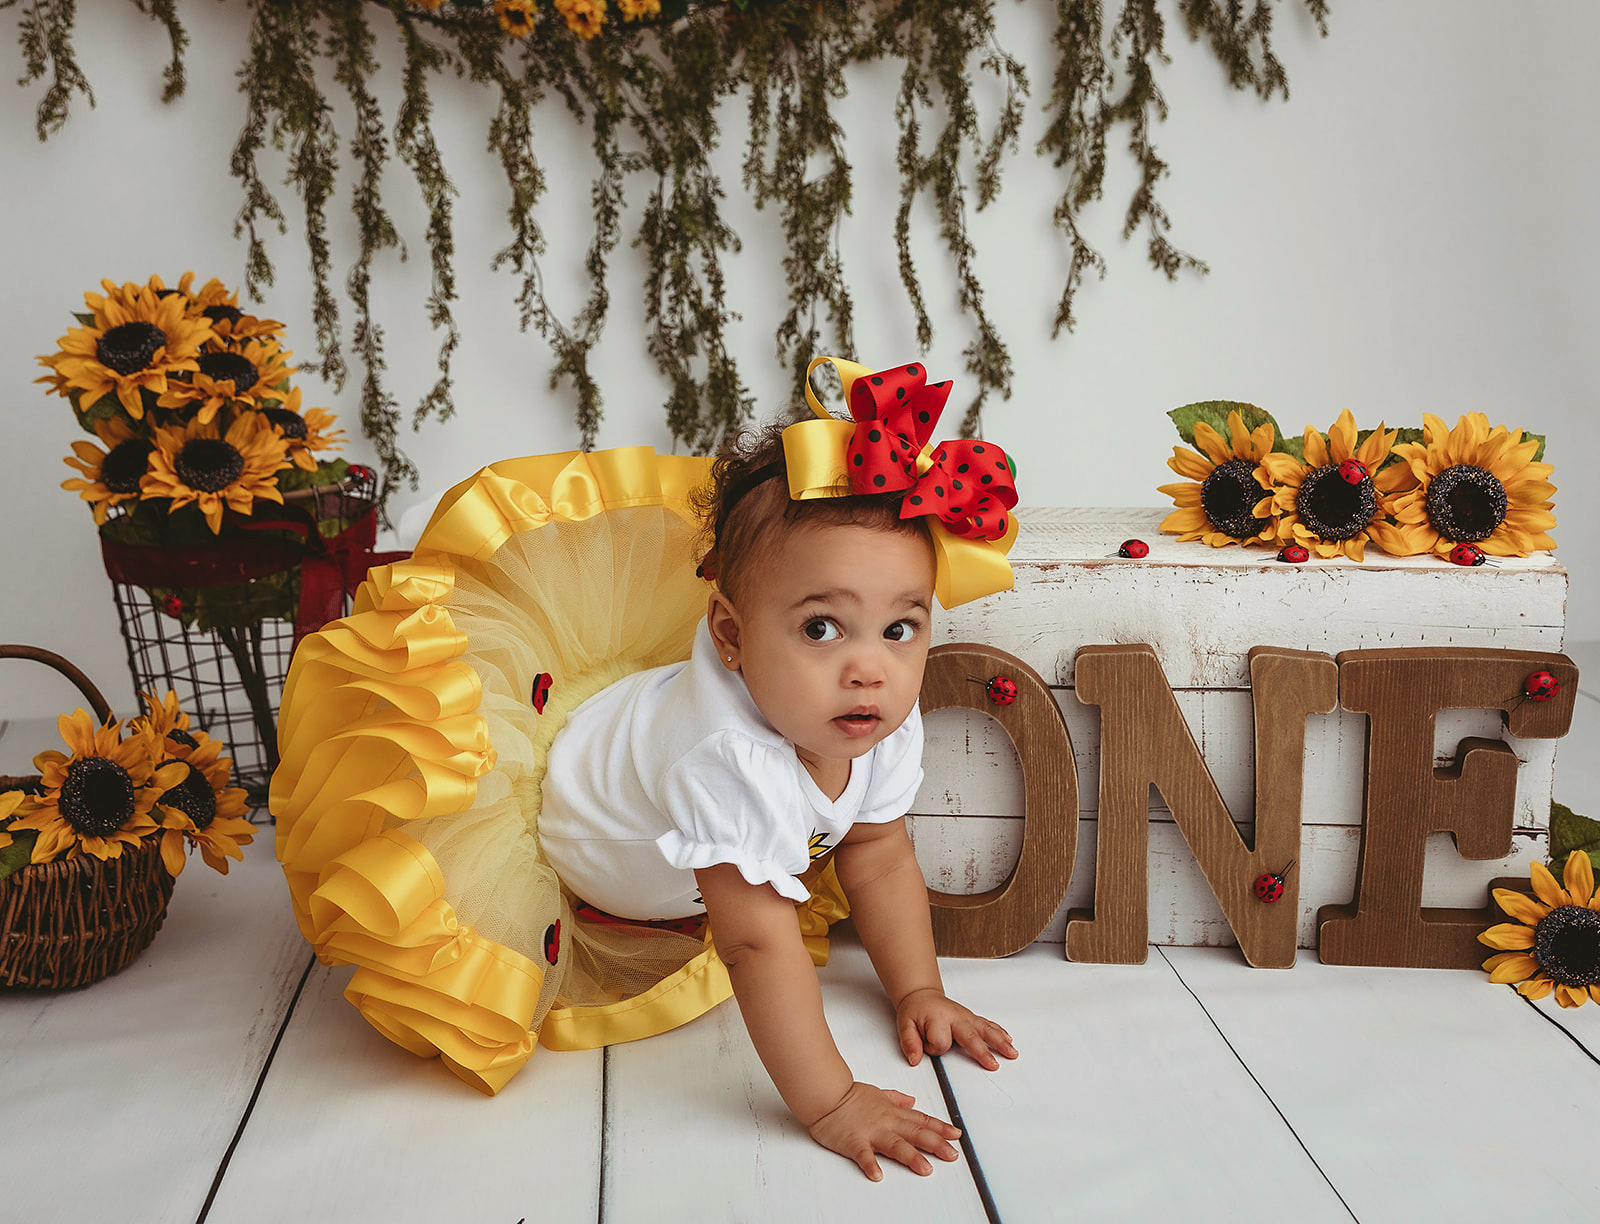 Toddler in yellow tutu and red headband with sunflower set